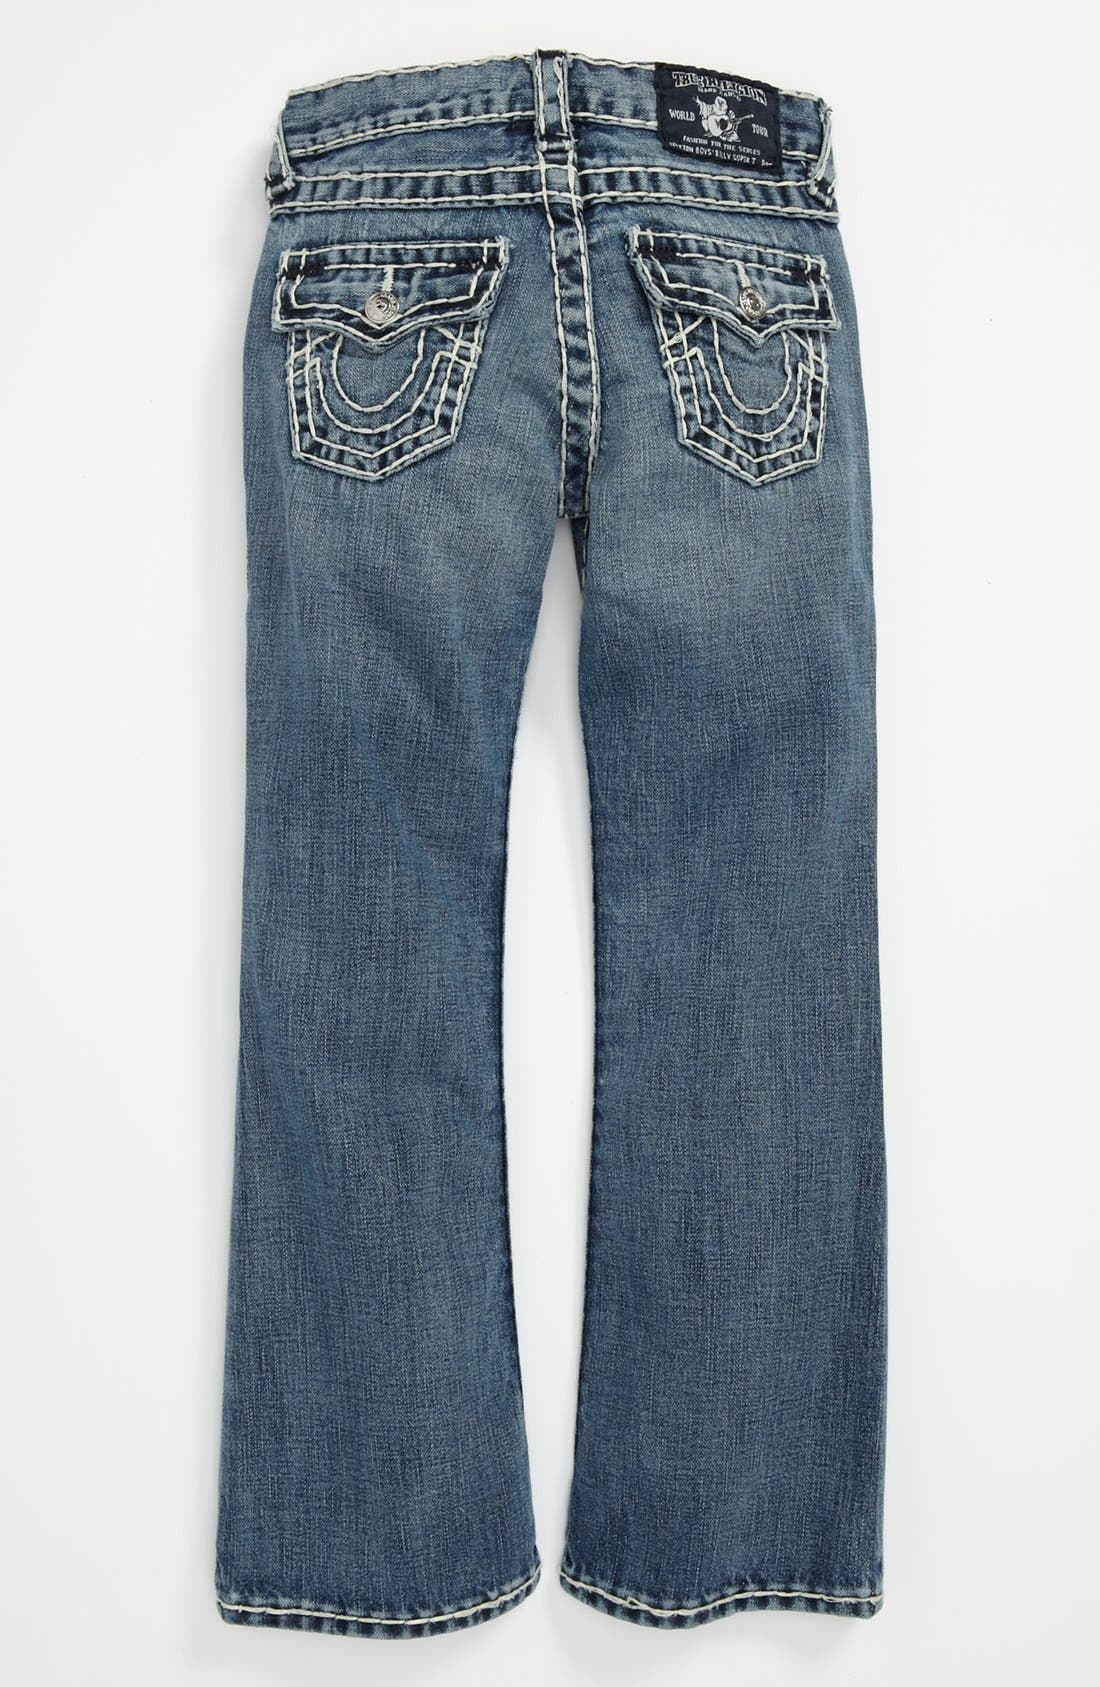 Main Image - True Religion Brand Jeans 'Jack' Bootcut Jeans (Big Boys)